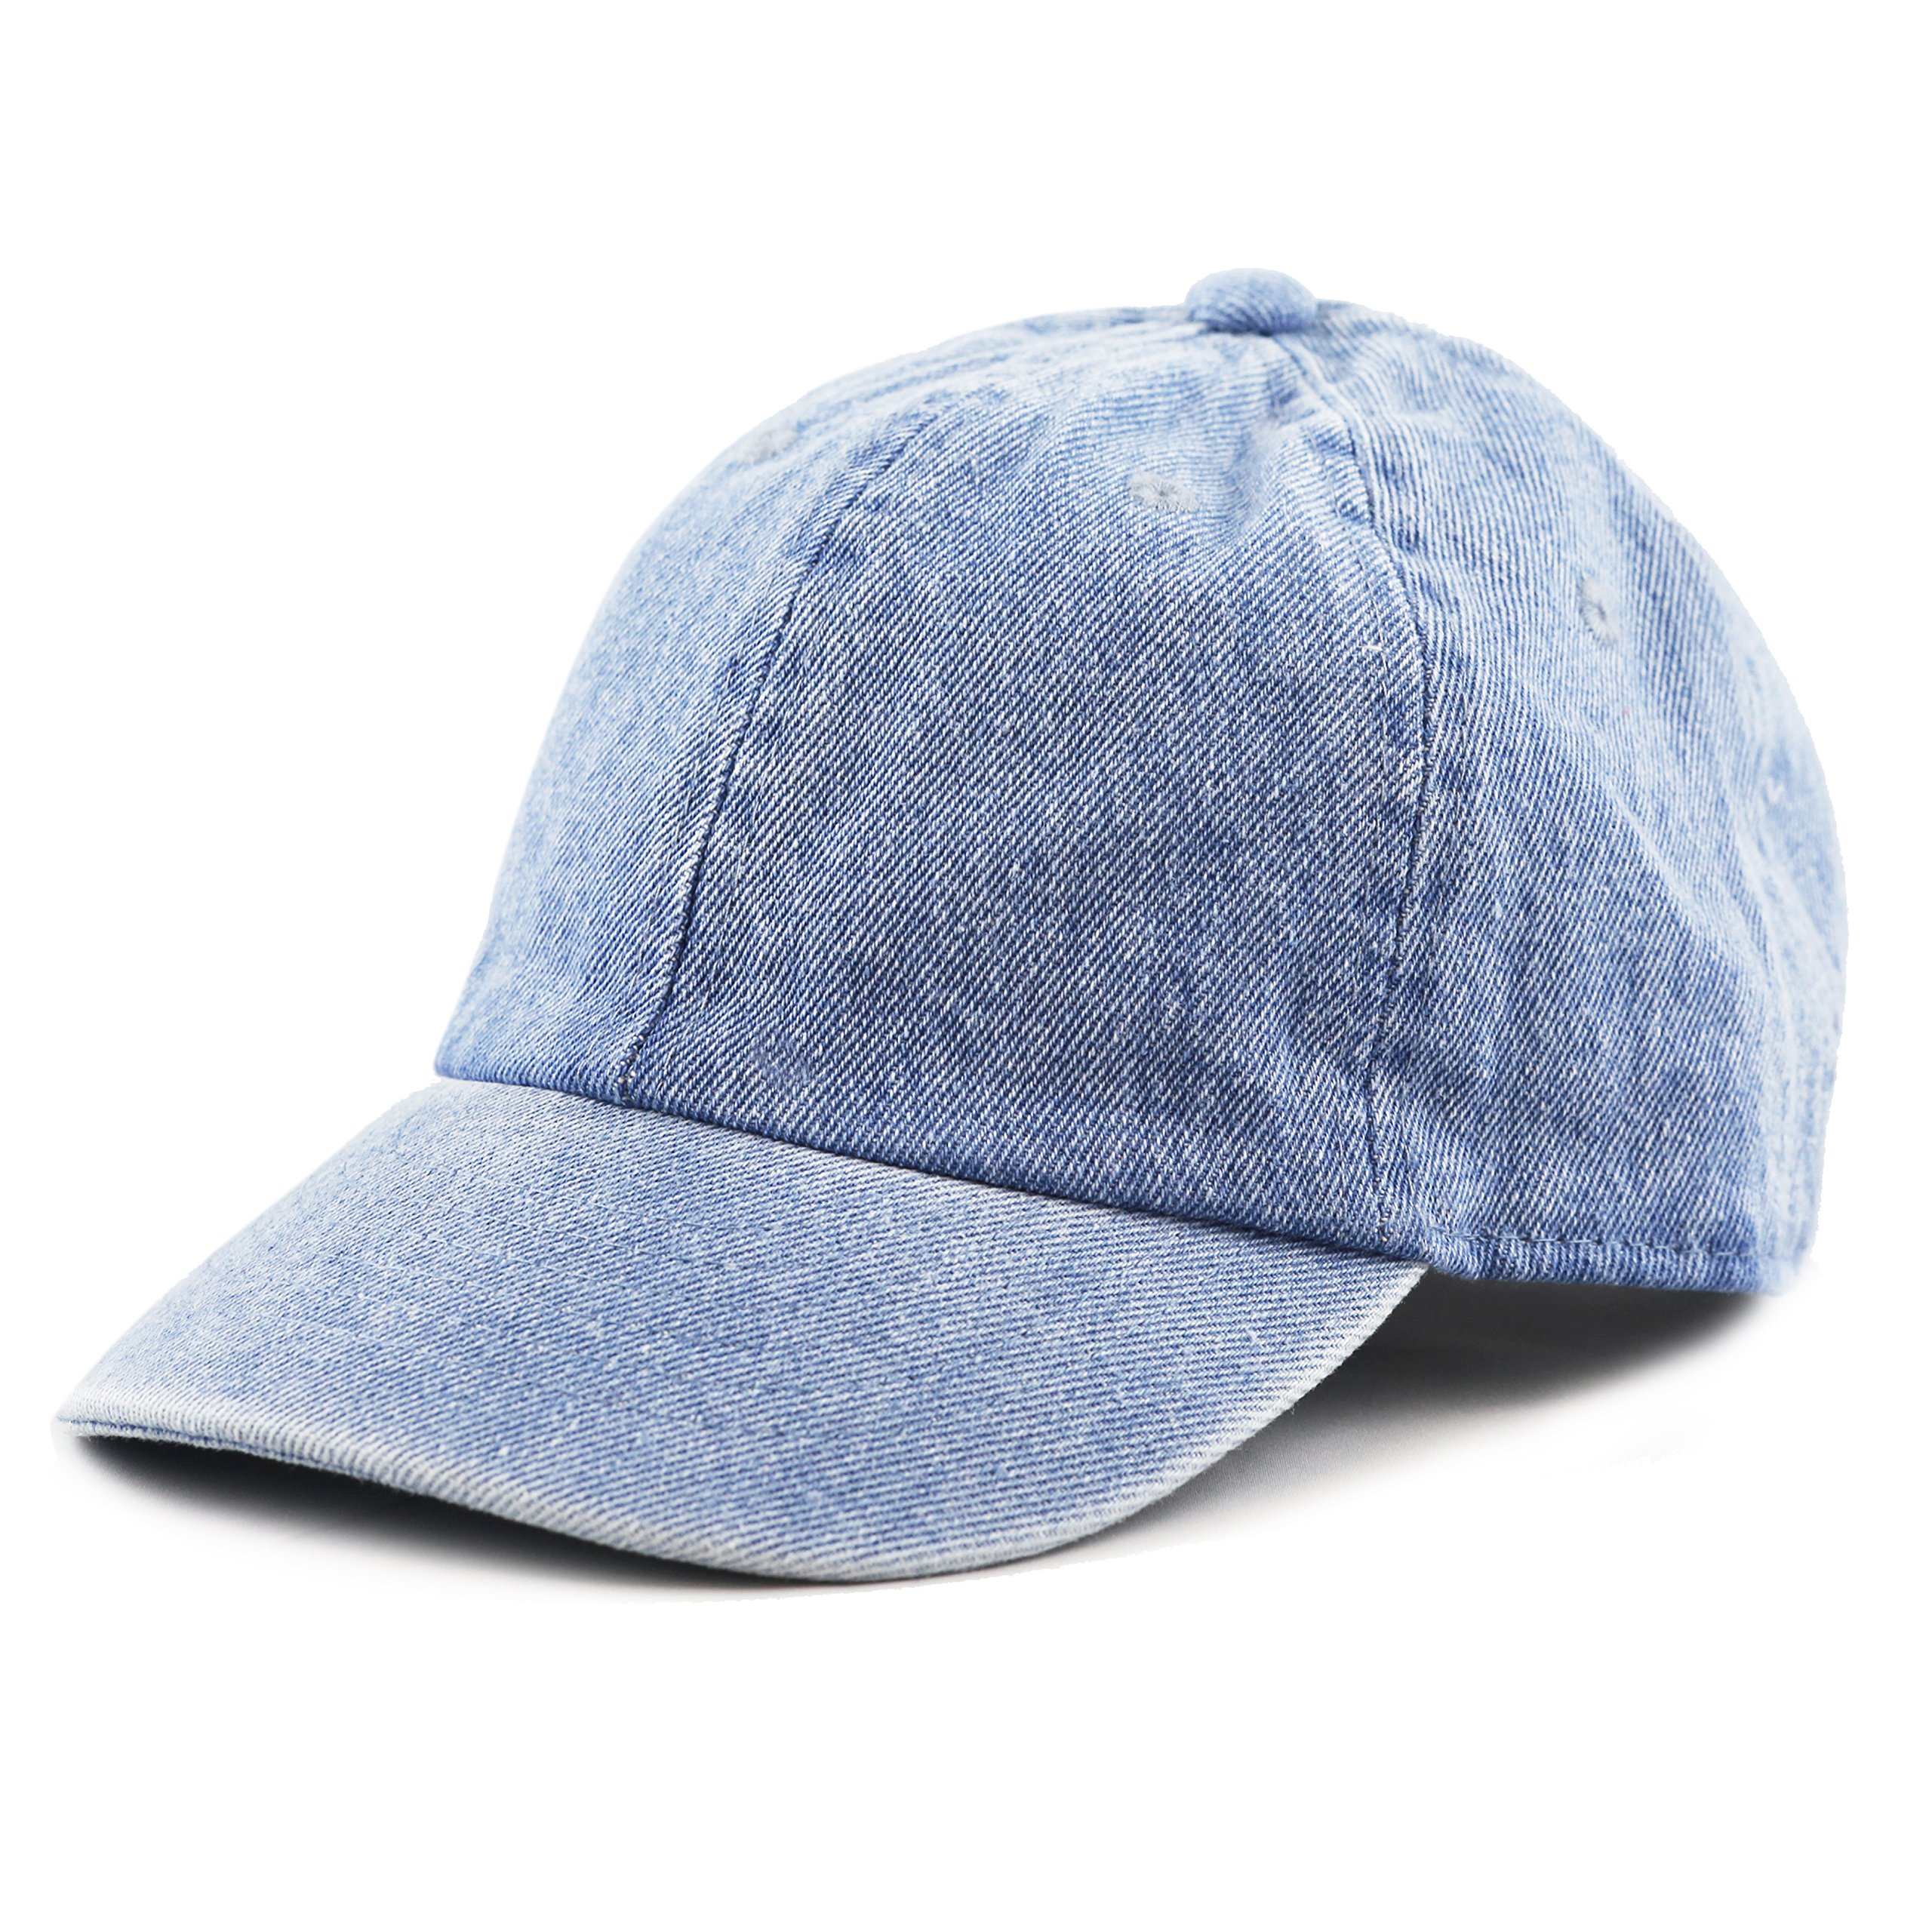 THE HAT DEPOT Kids Washed Low Profile Cotton and Denim Baseball Cap (Light Denim) by THE HAT DEPOT (Image #1)